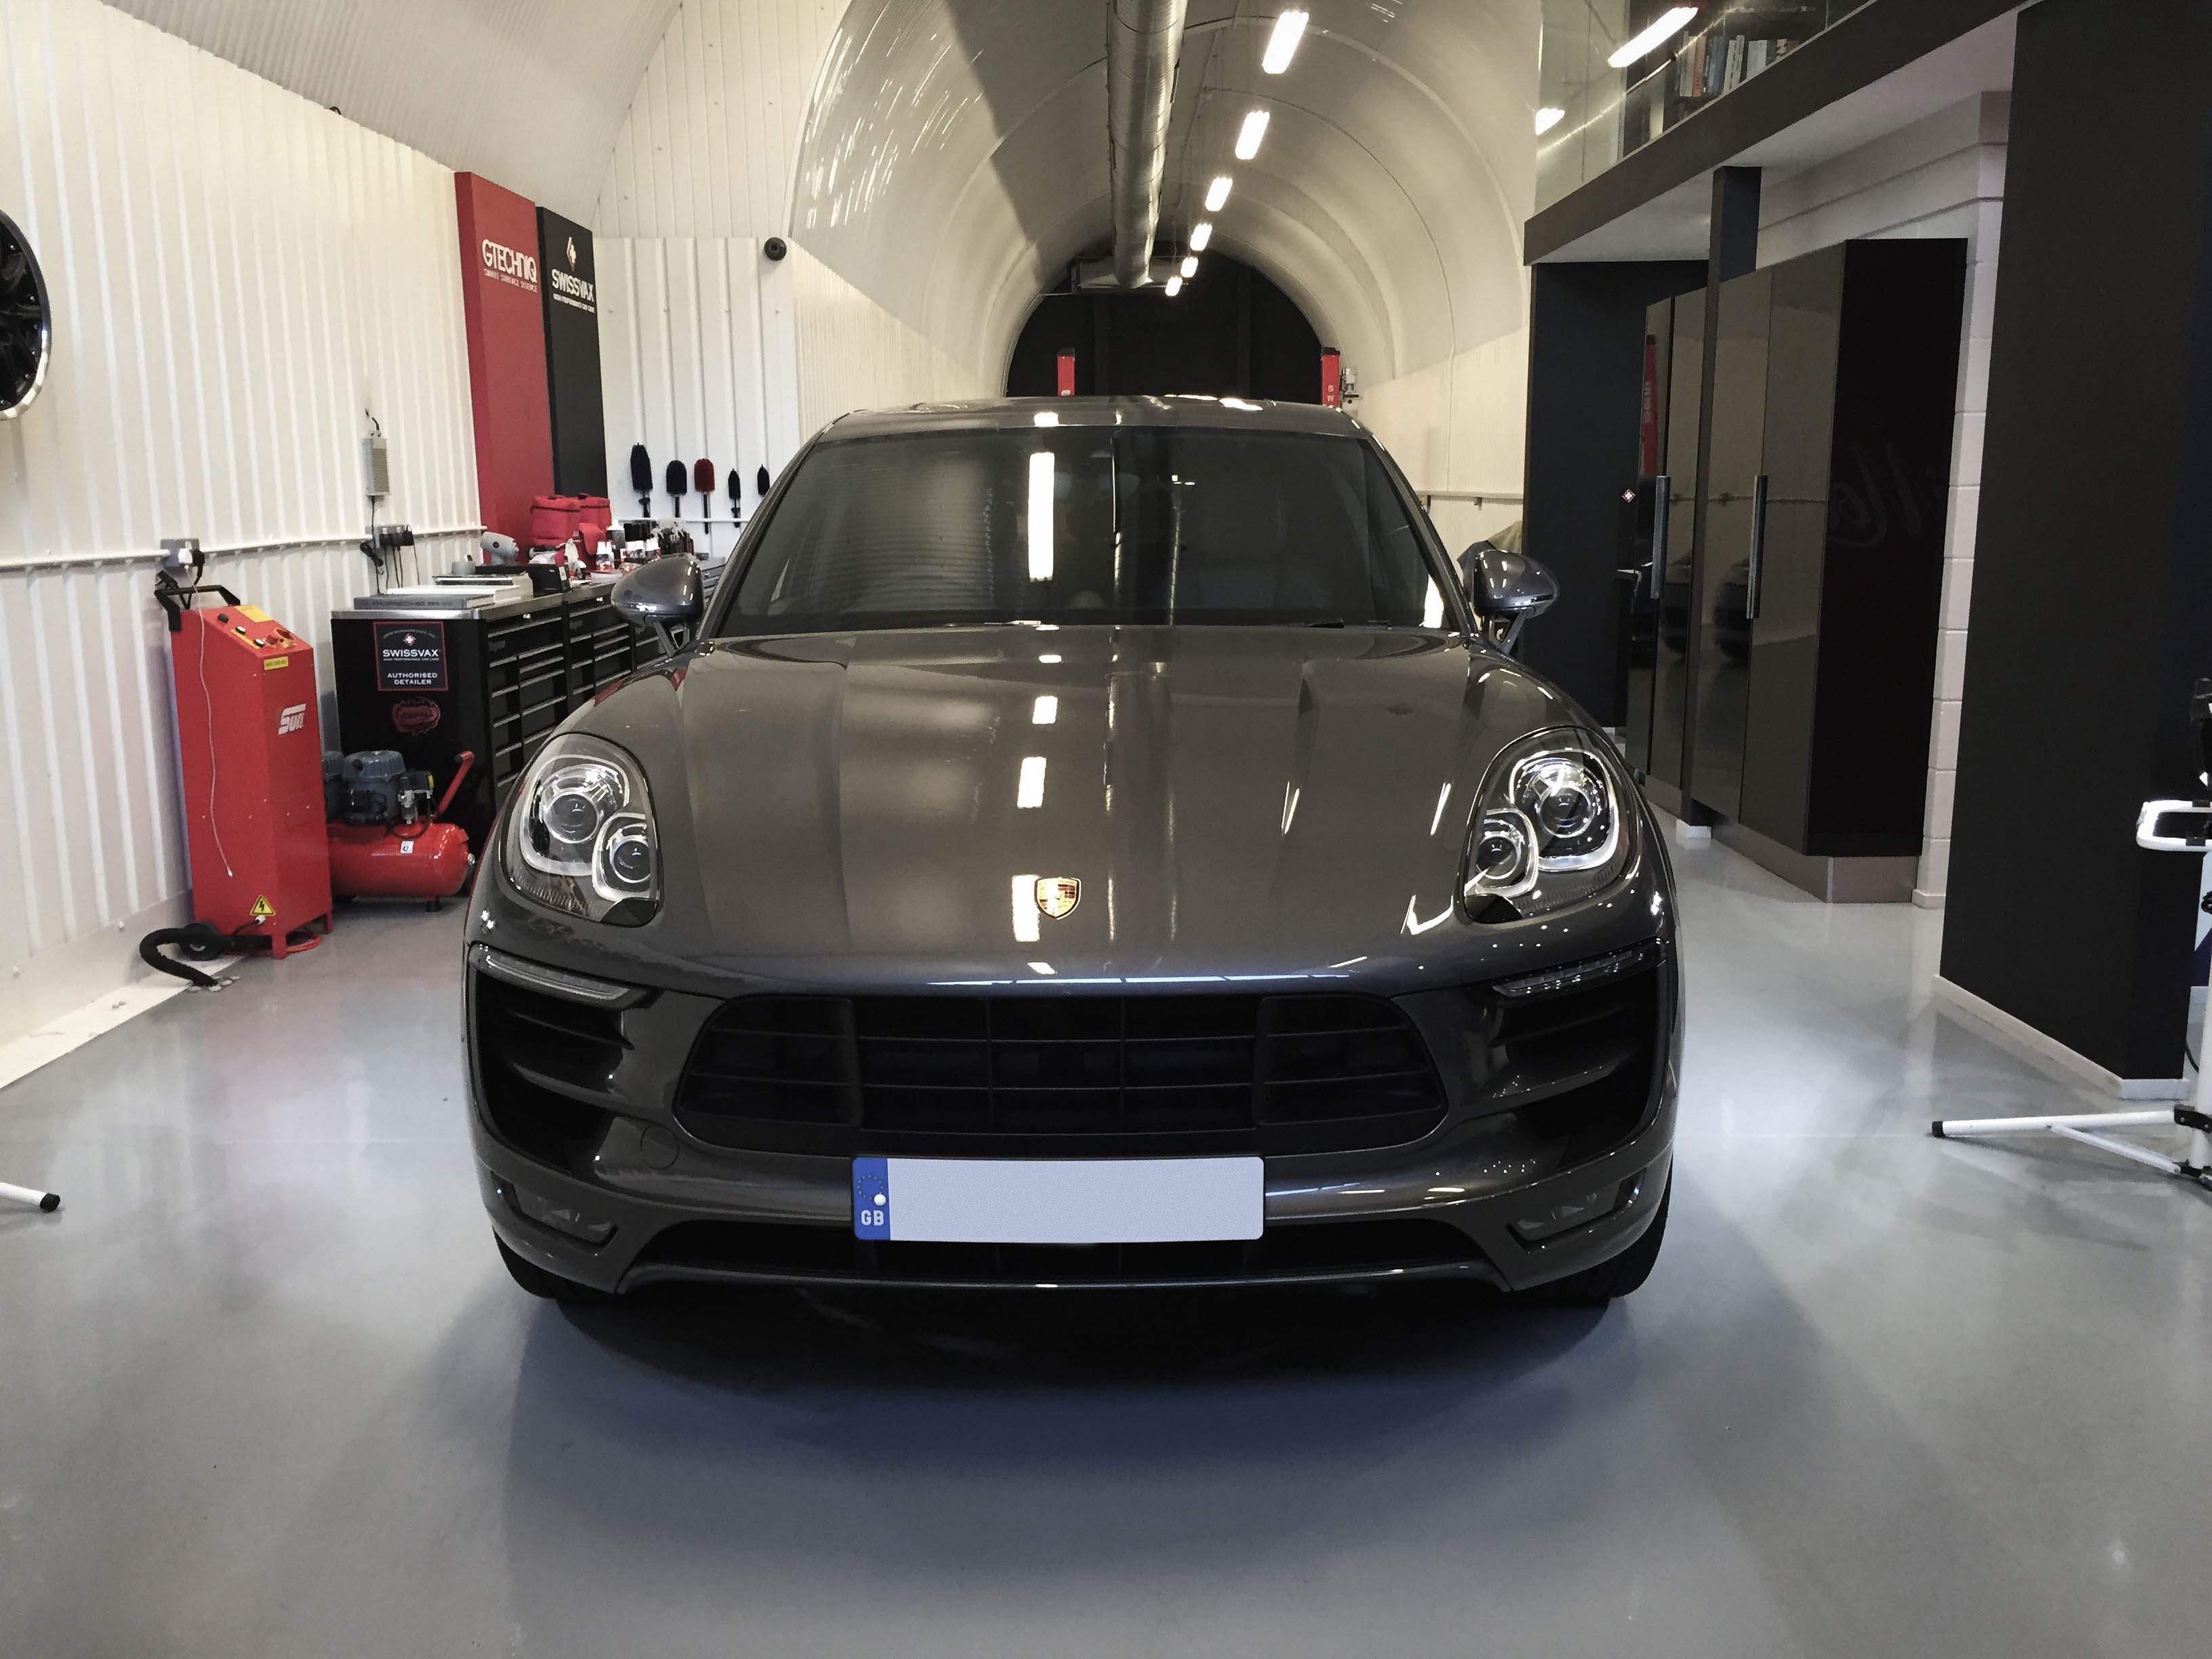 Porsche Macan GTS – Head on